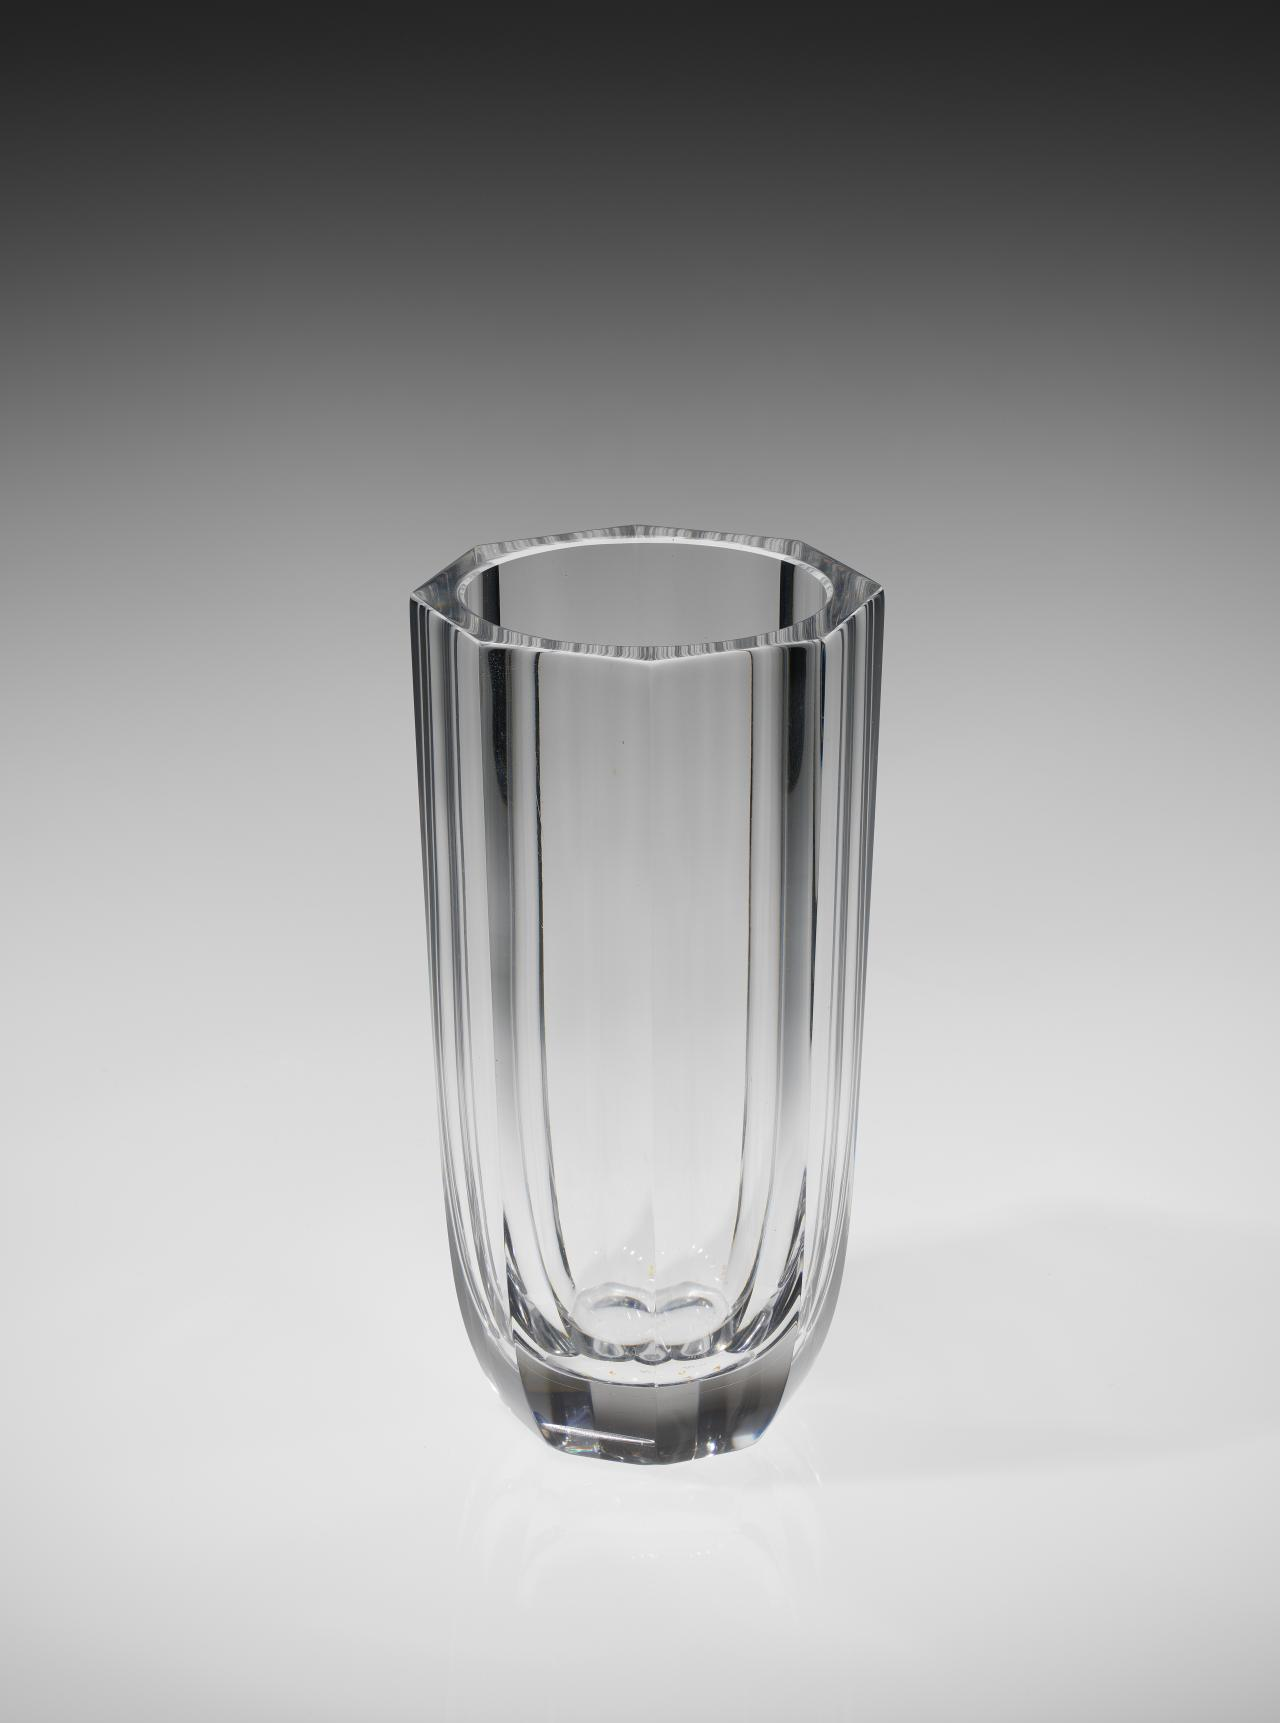 Vase, from the Fasett range